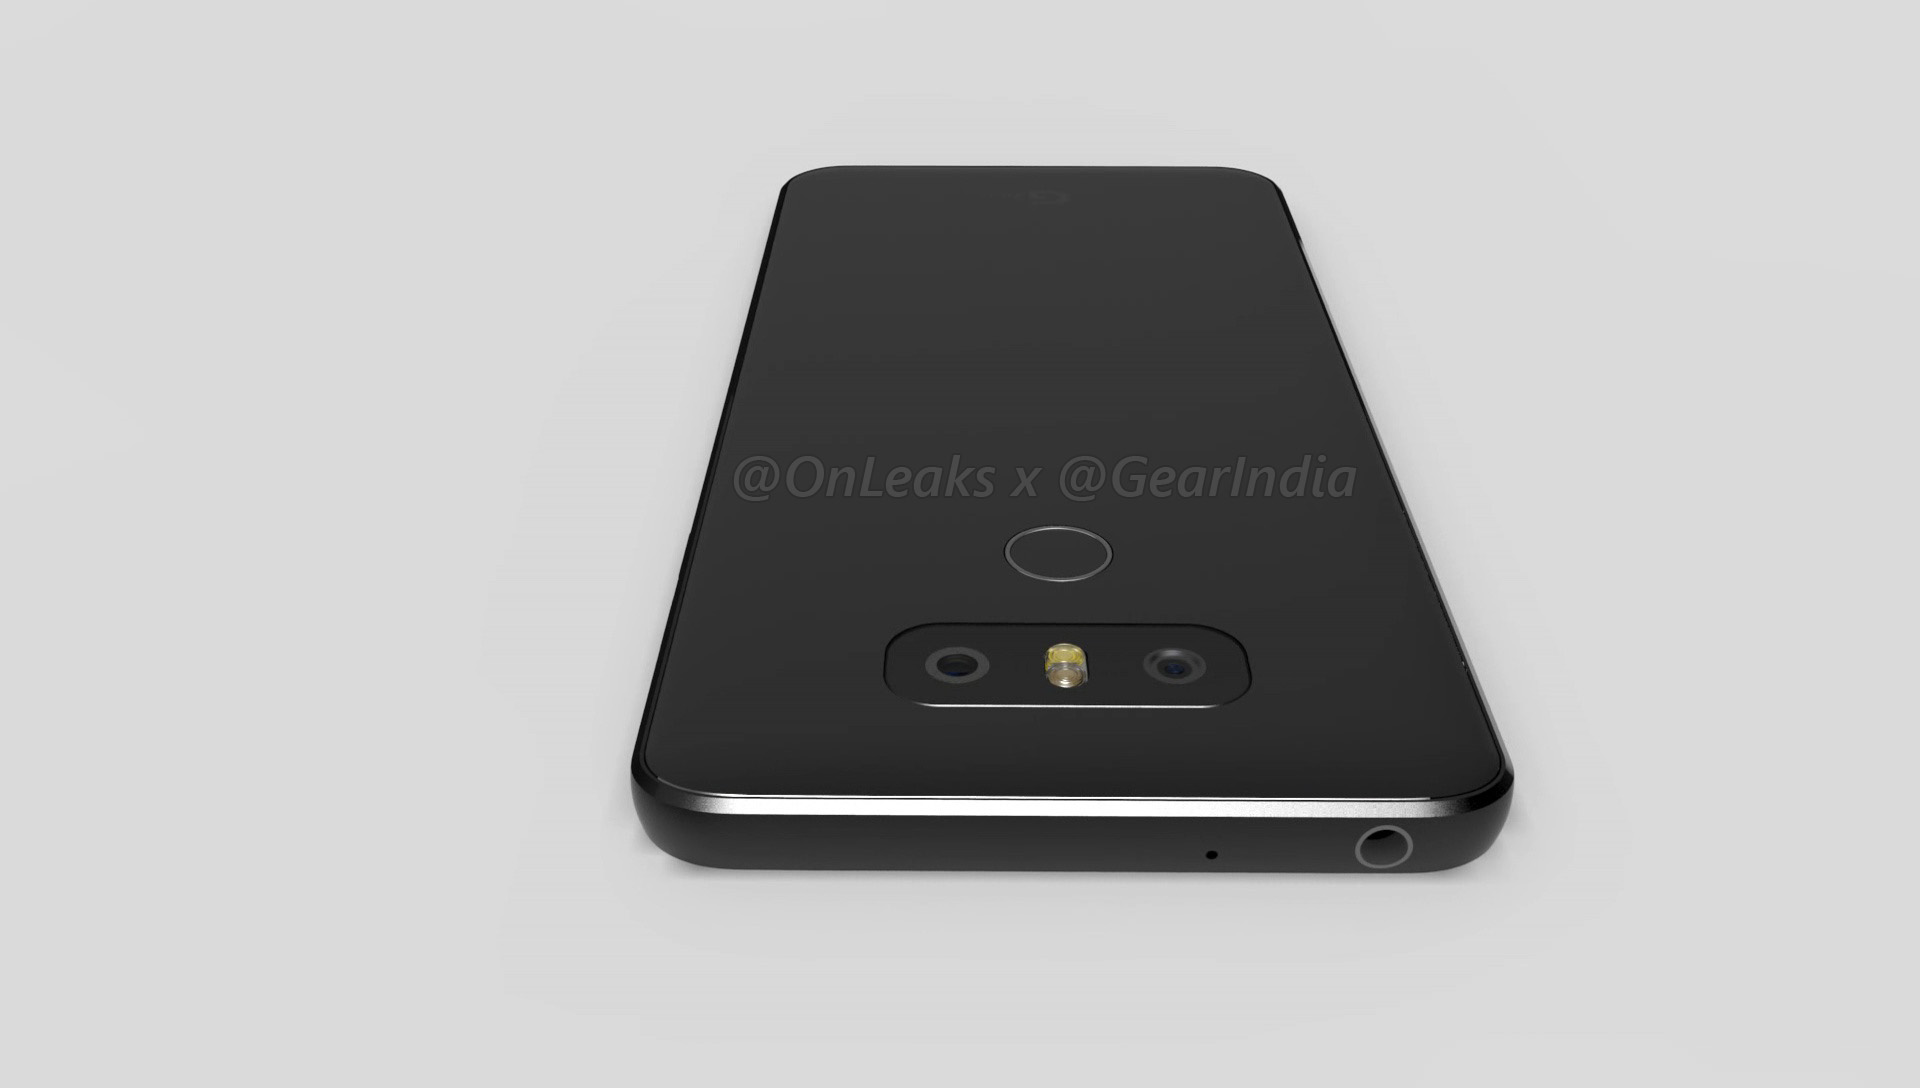 Renders-of-LG-G6-based-on-factory-CAD-images 6.jpg